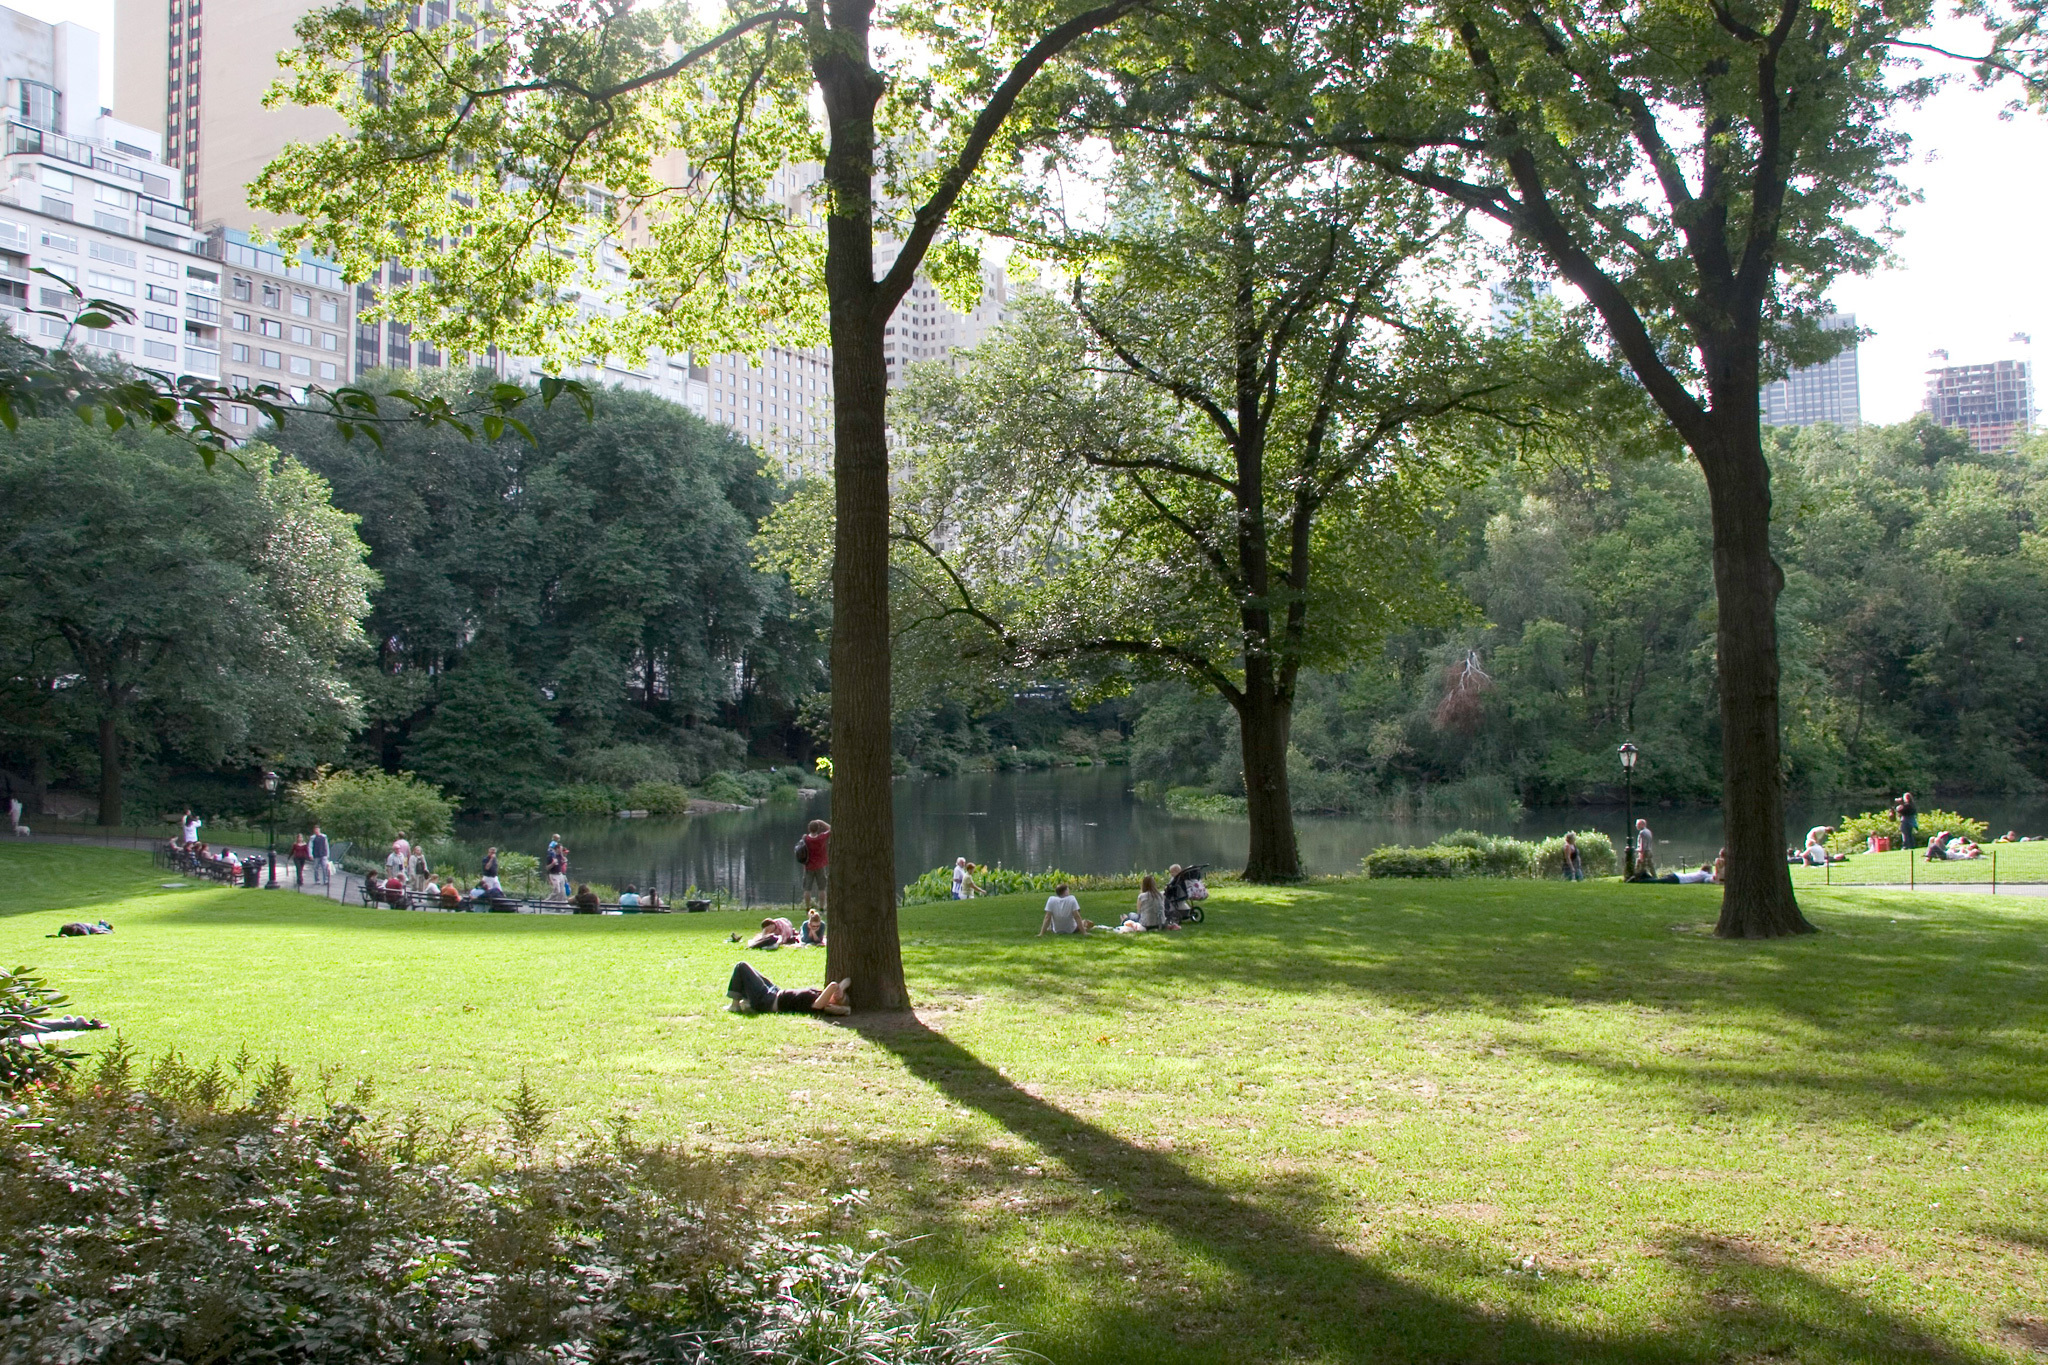 Seek out hidden spots in Central Park